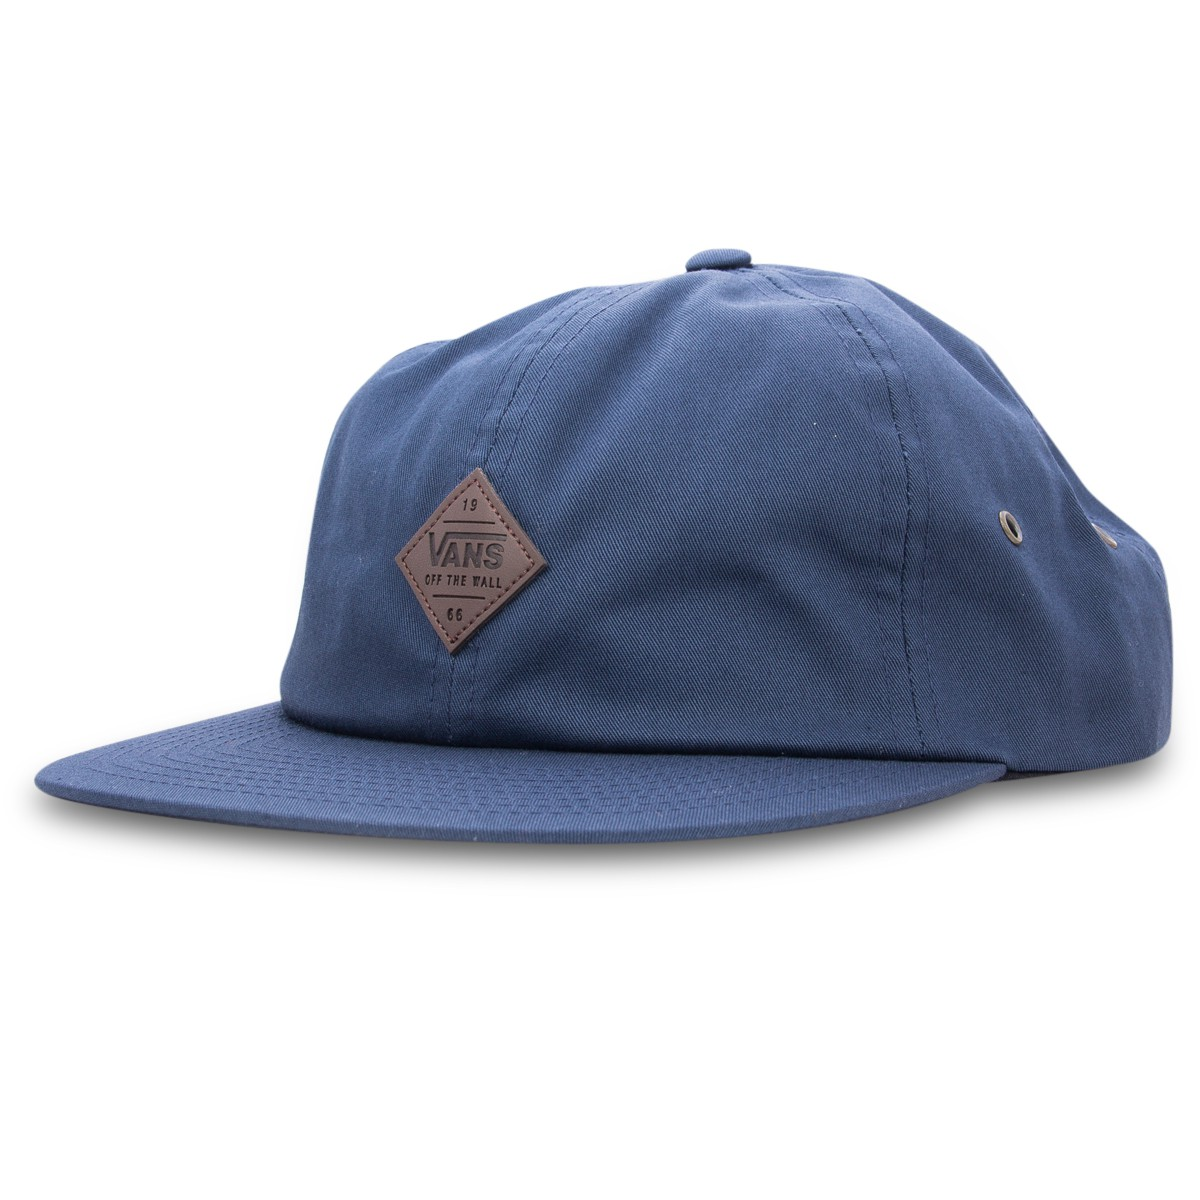 Vans Cap Nesbitt Jockey Dress Blues Unstructured Strapback Skateboard Hat FREE POST